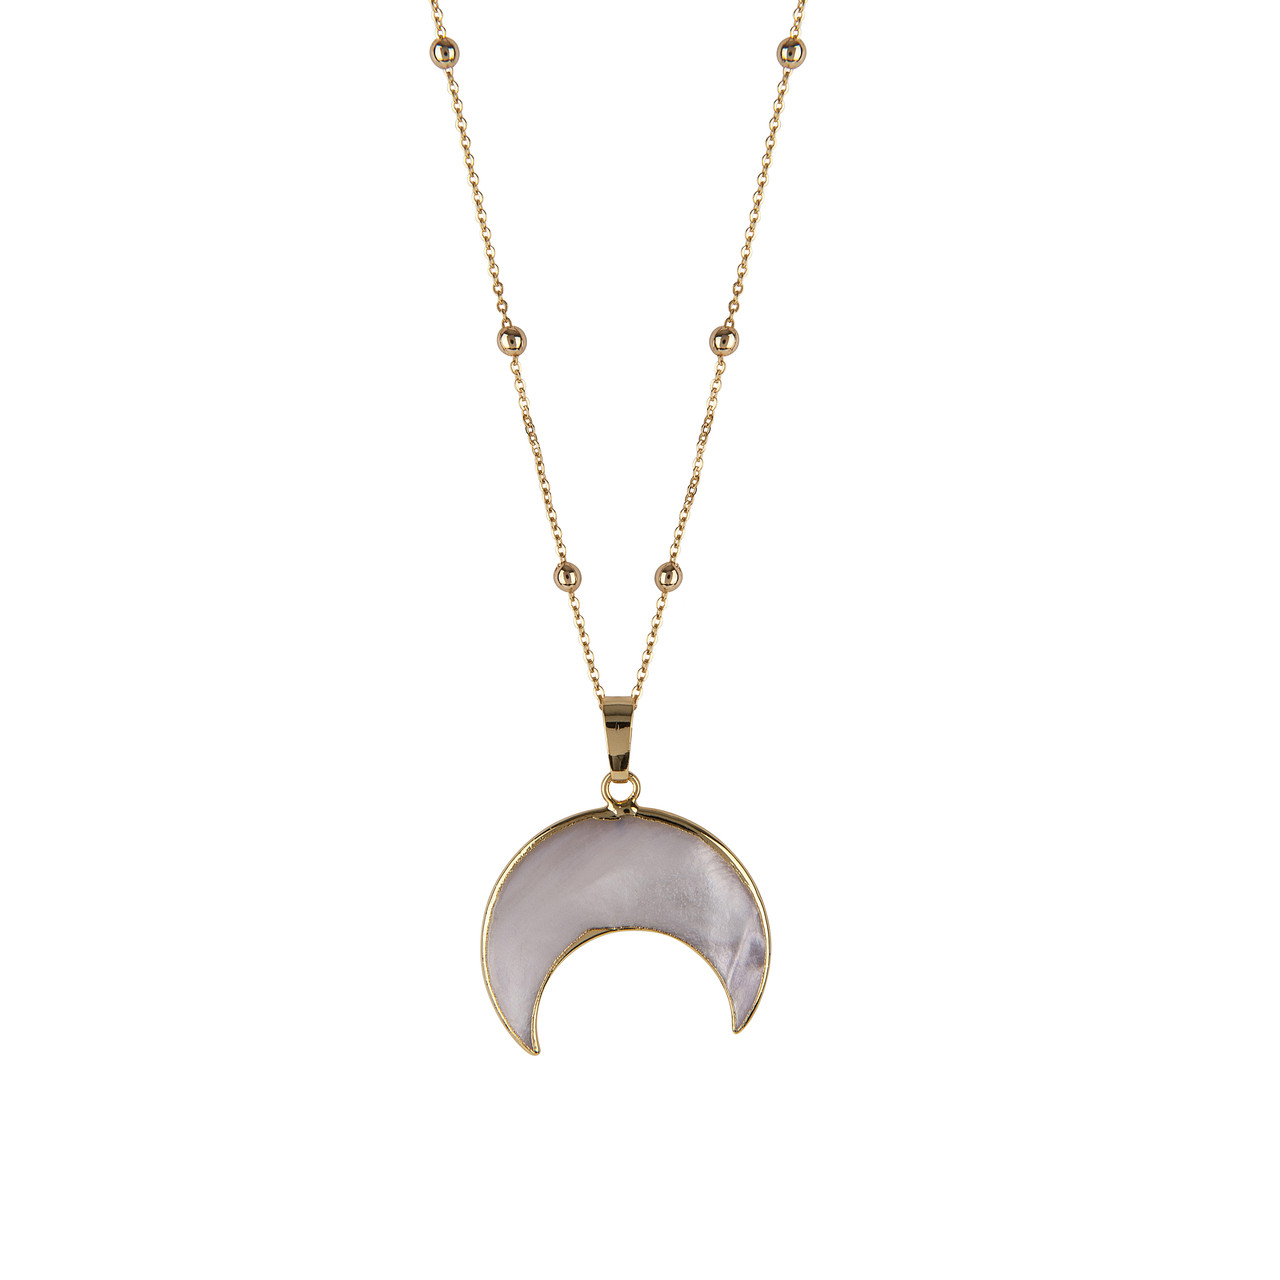 5282a55f8bd781 Crescent Moon Mother of Pearl Necklace - Presh